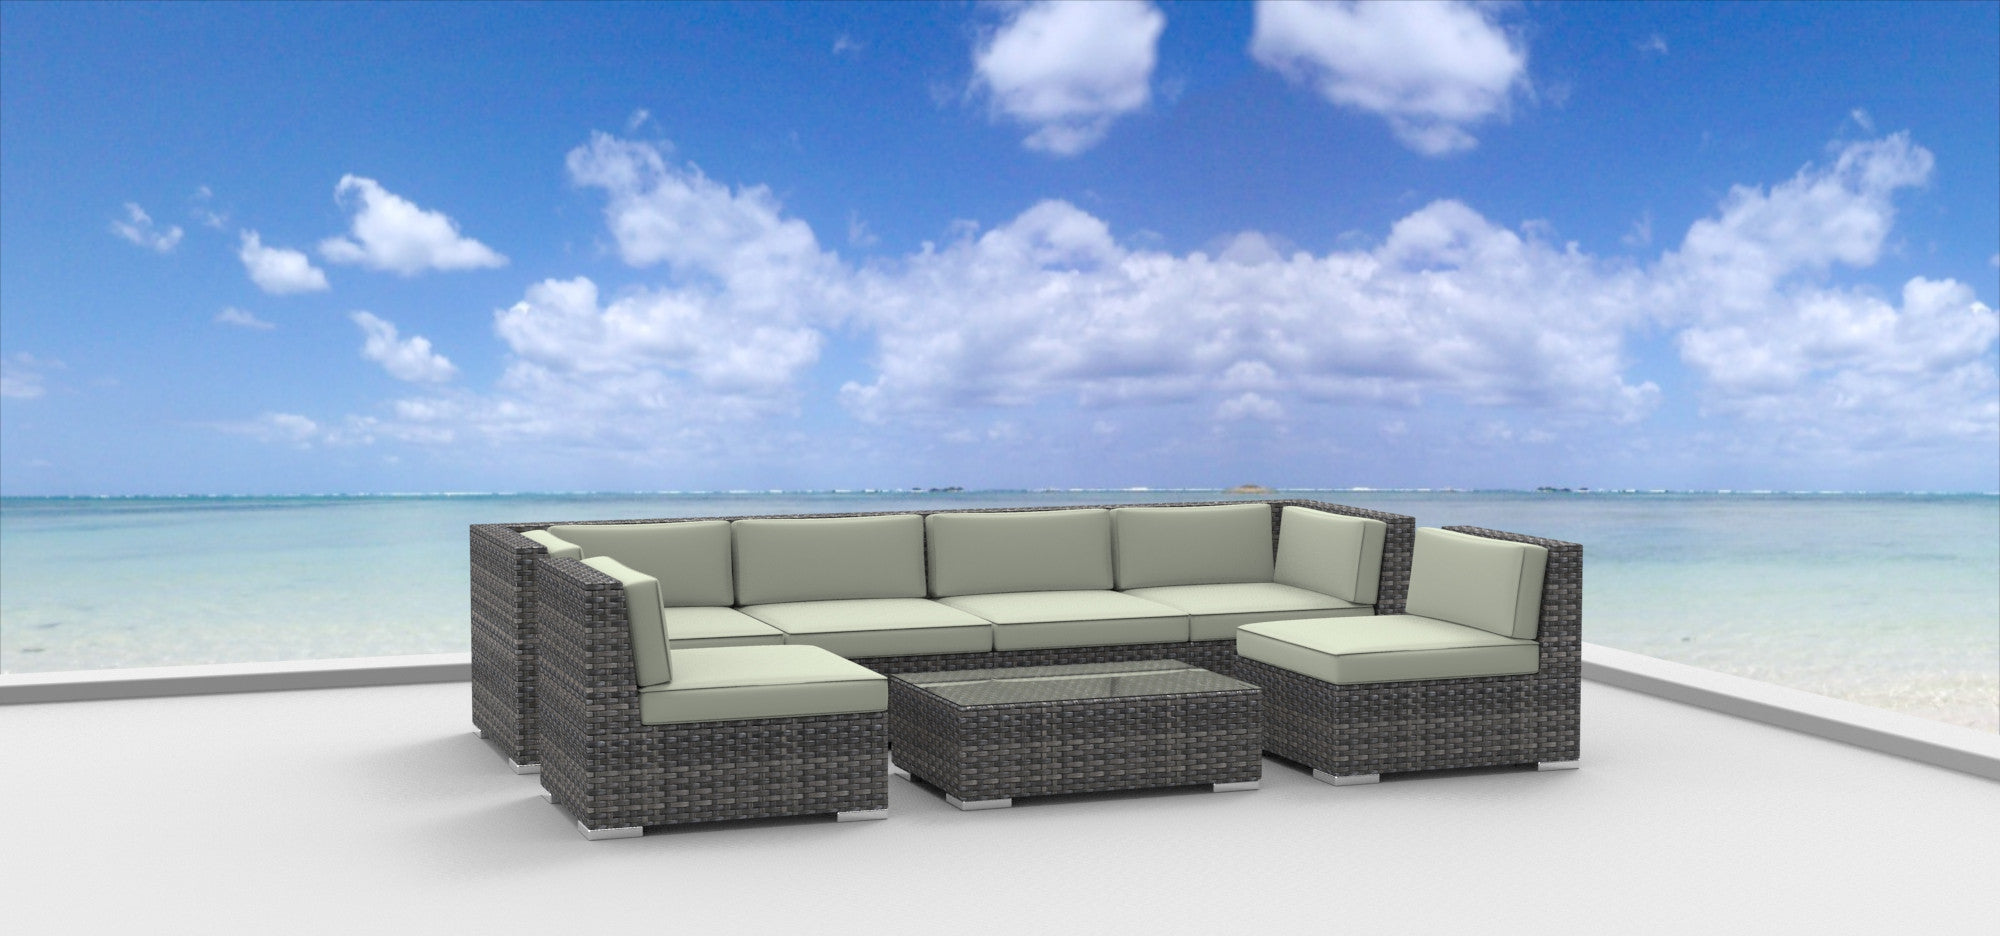 wicker luxury giovanna collection patio furniture the chat all set cast deep aluminum seating weather